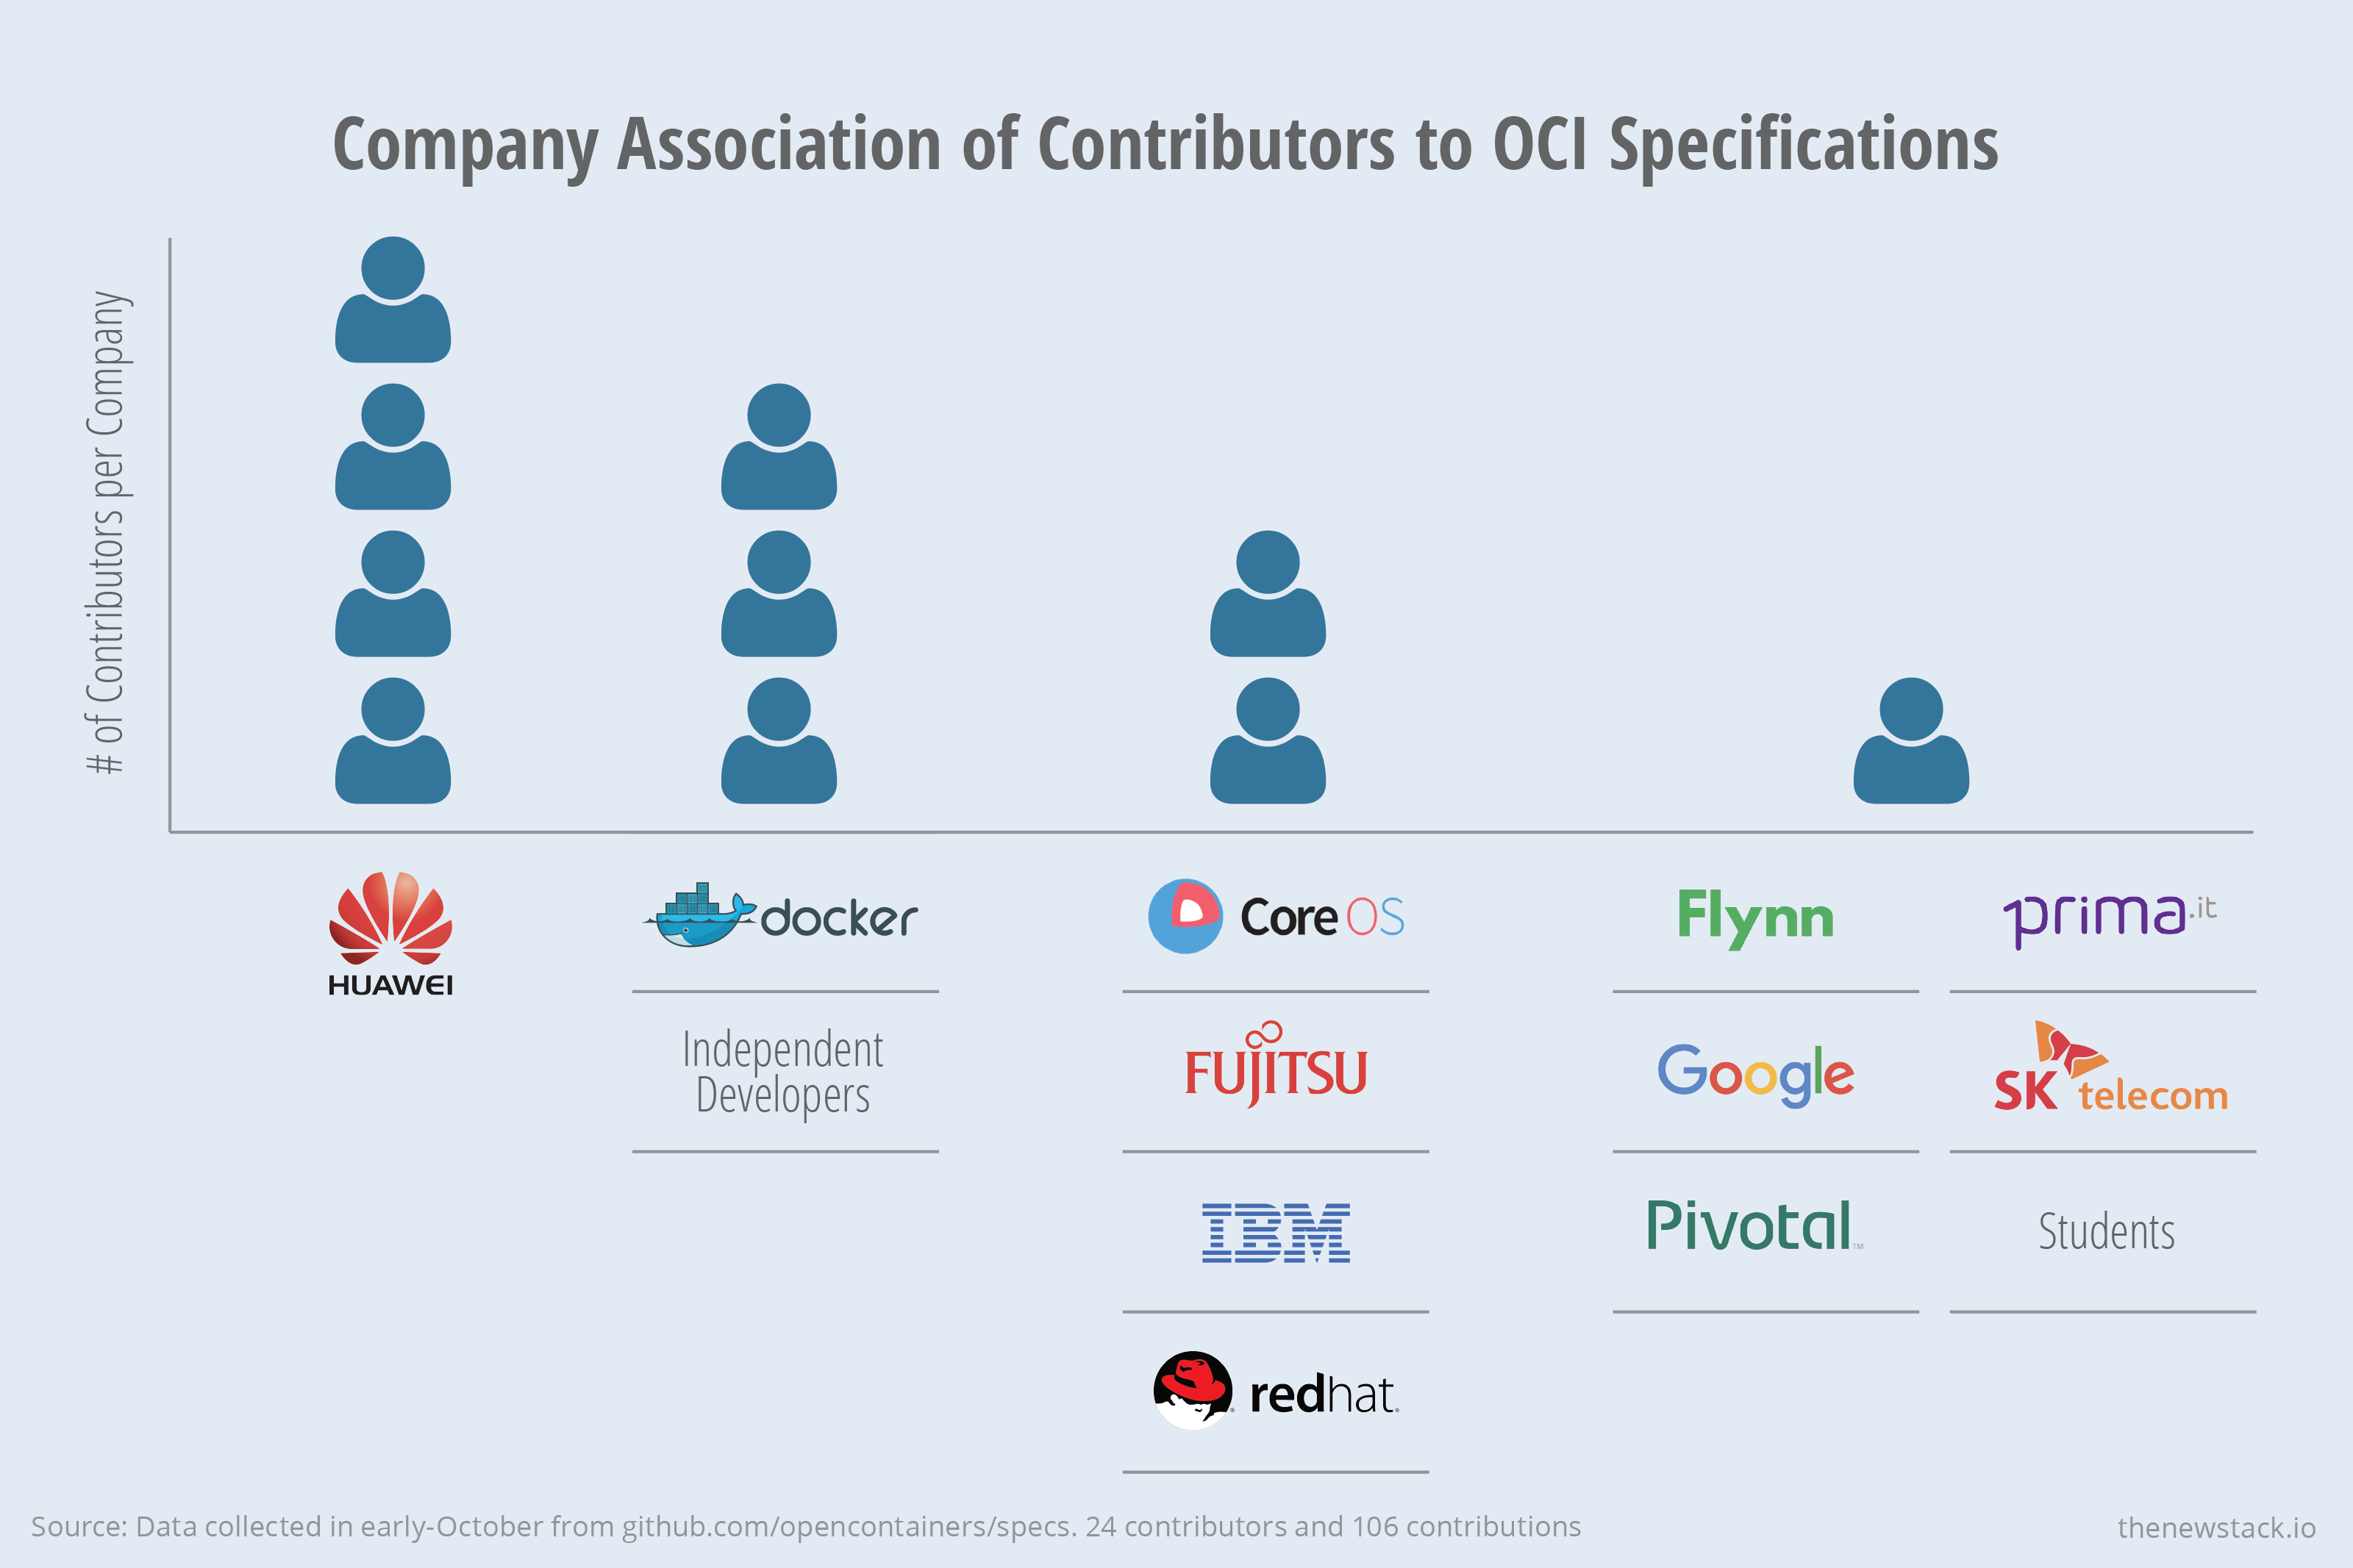 395bb7b0c8b The companies with the most active in contributors to OCI spec are Huawei